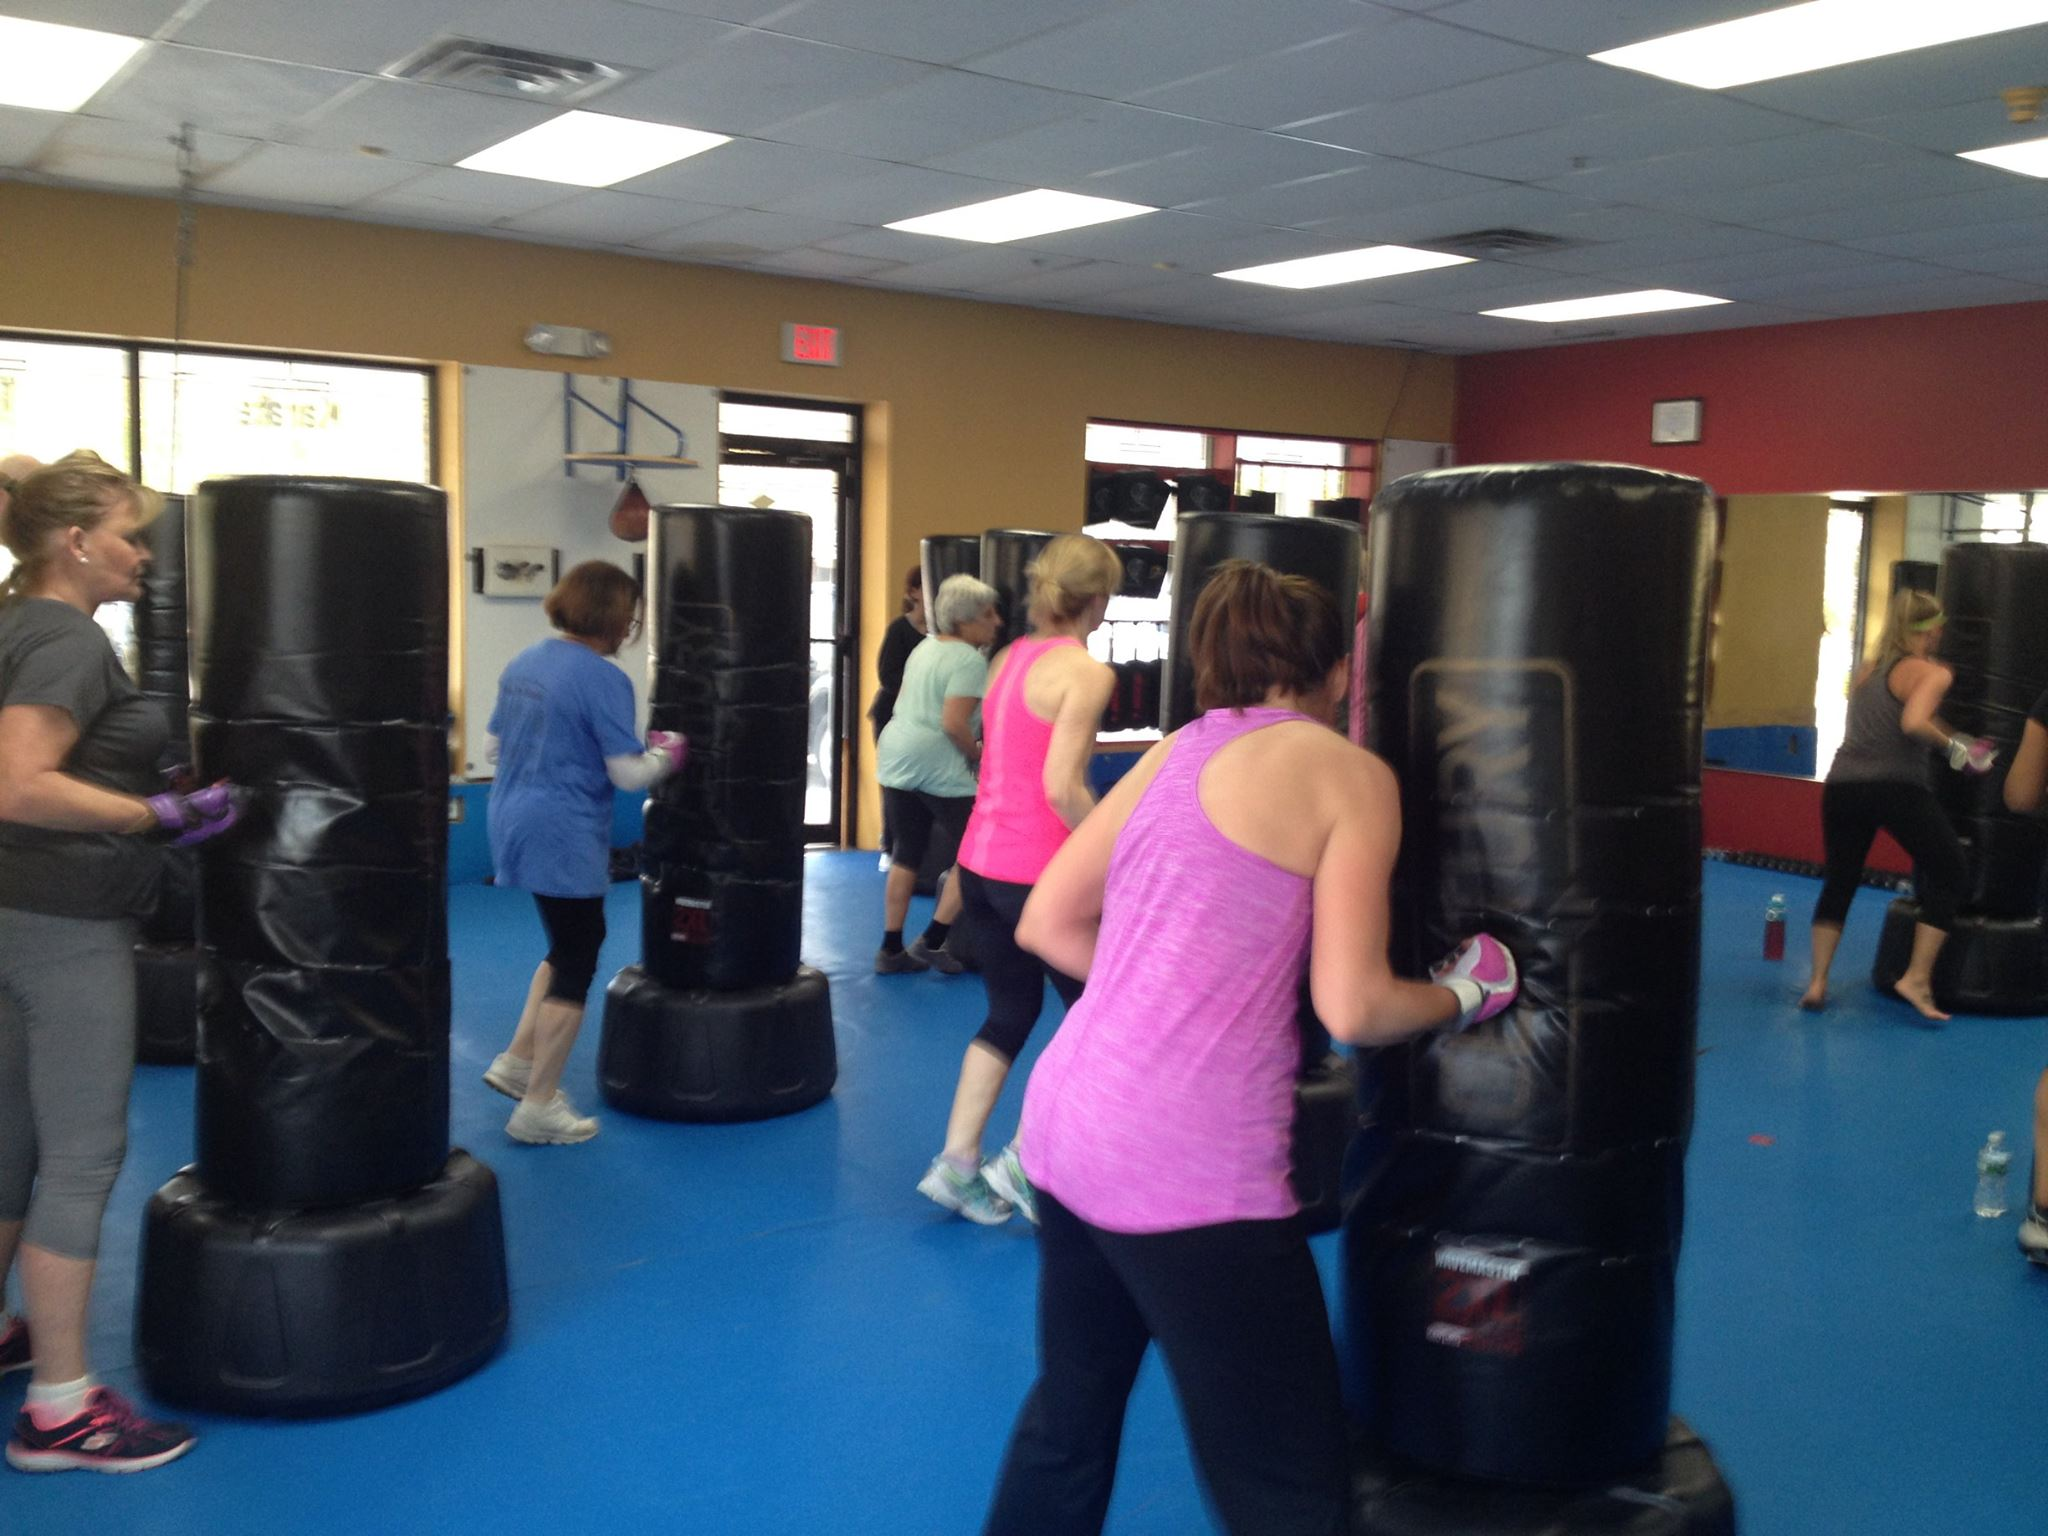 Fitness Kickboxing Women in class uppercutting the bag